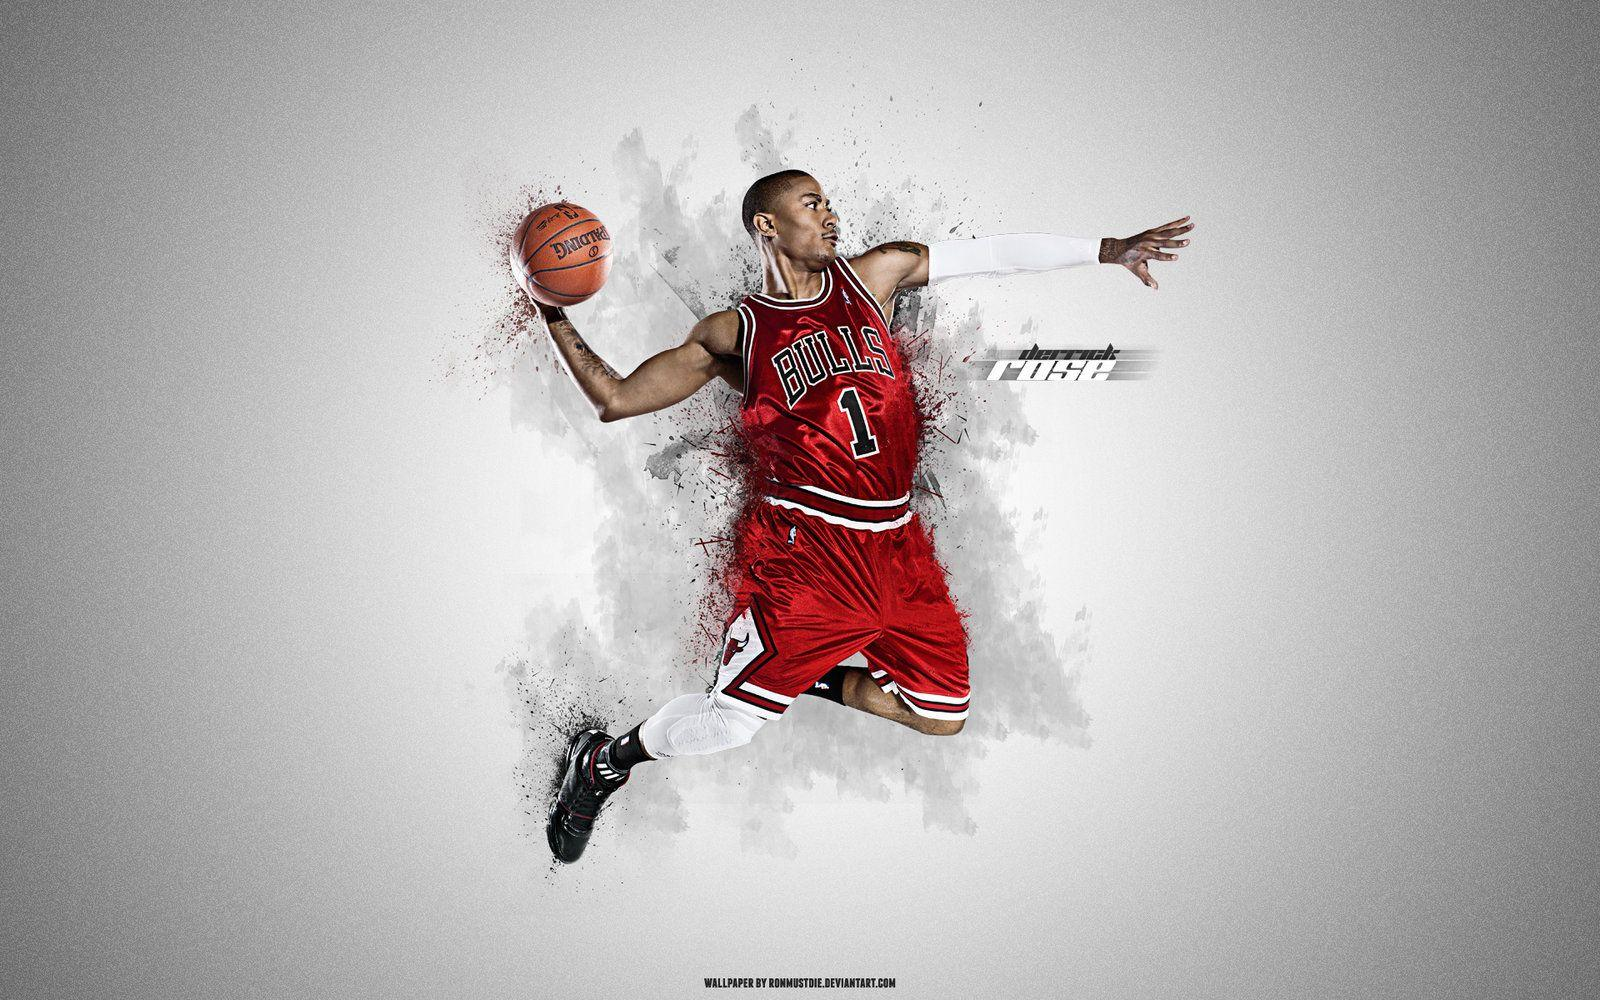 Knight Basketball Player Wallpaper: Basketball Player Wallpapers